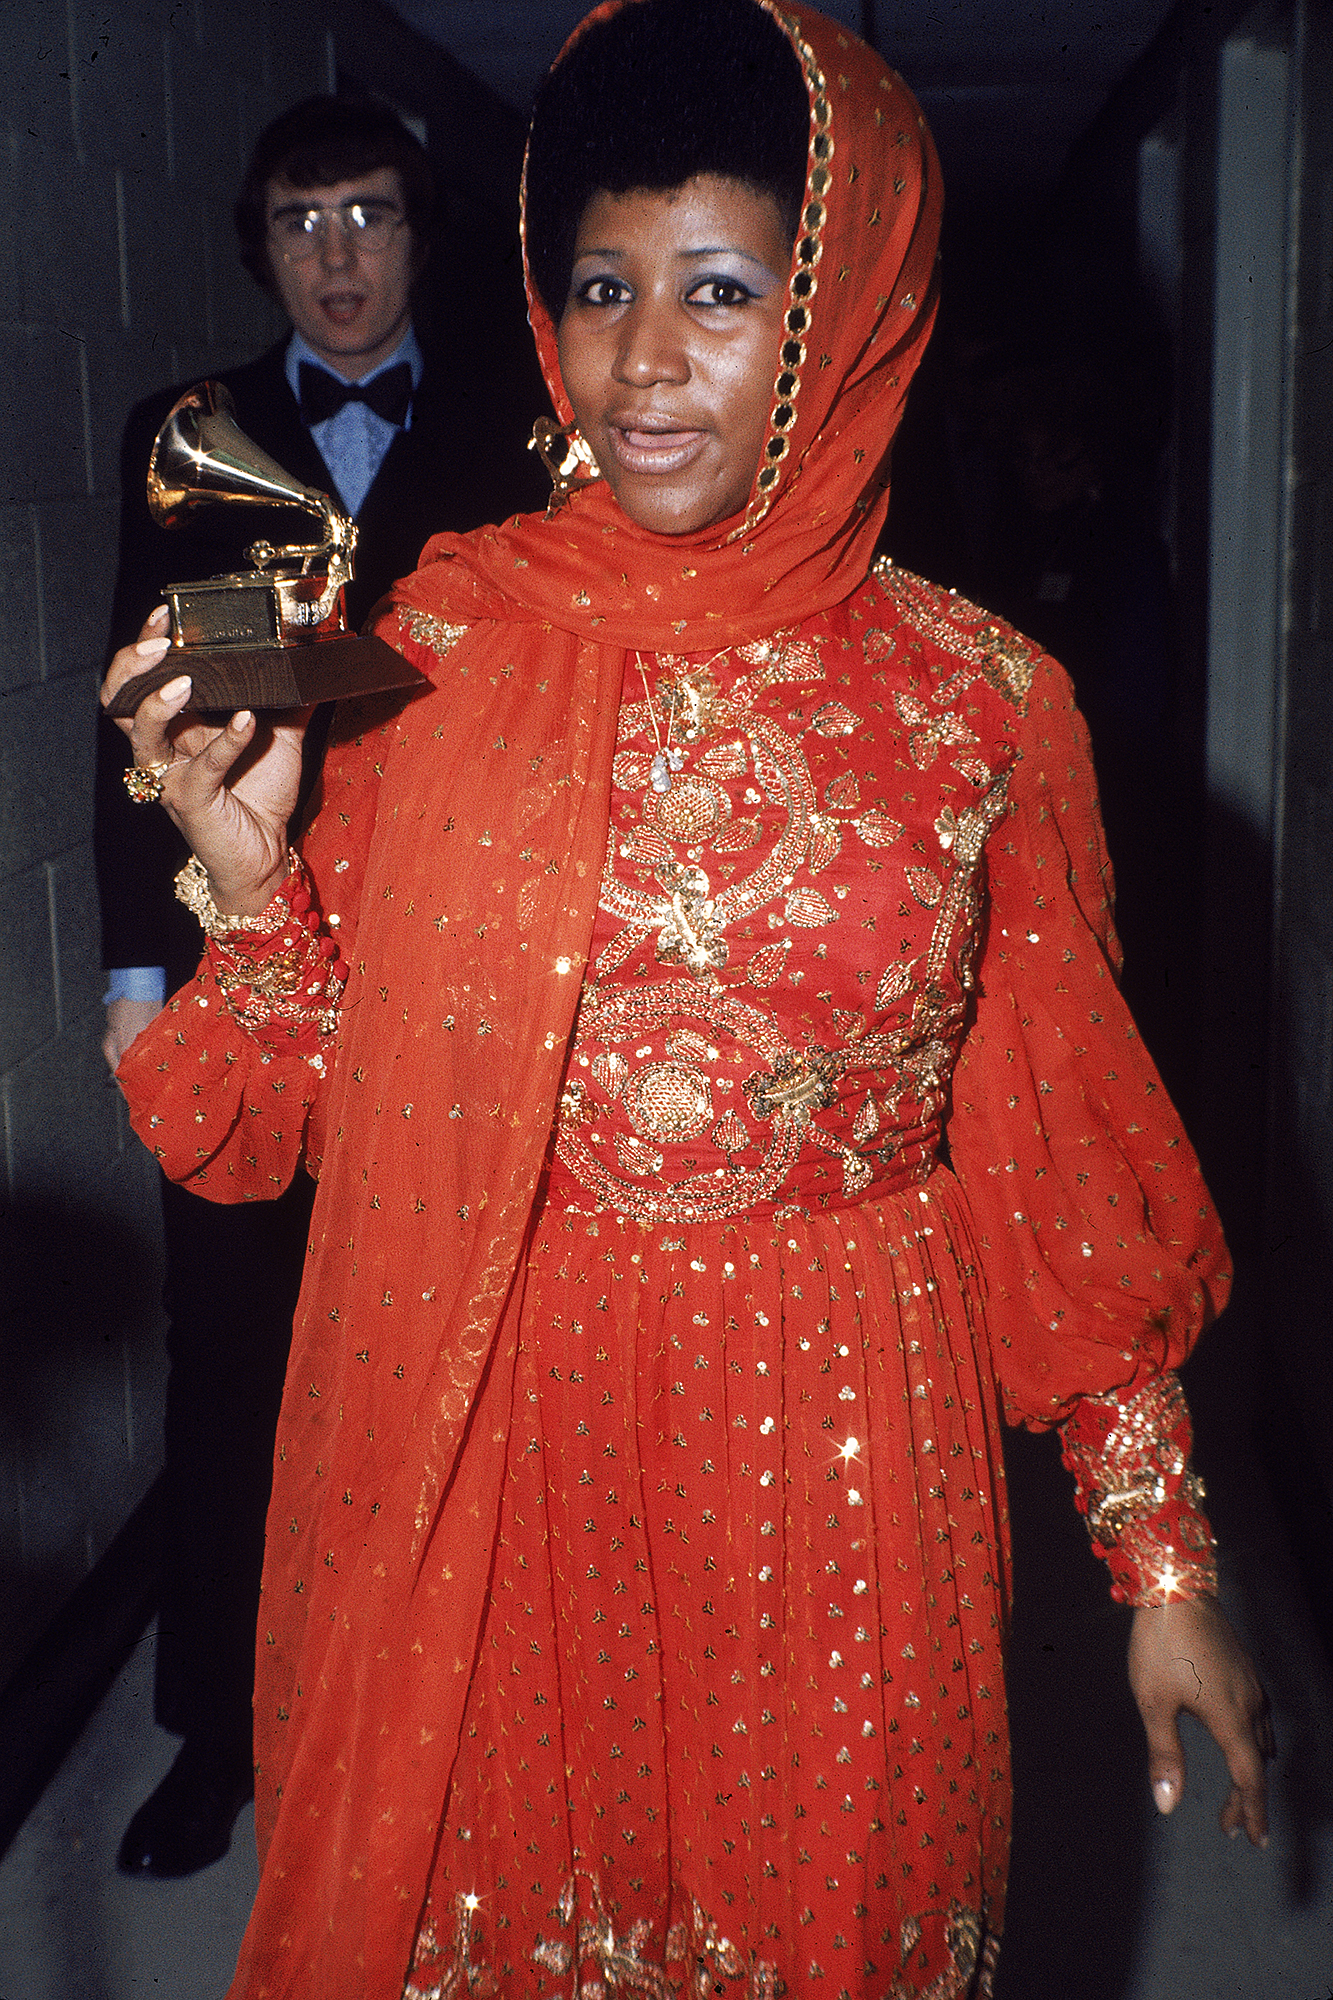 Aretha-Franklin-grammy-awards - Aretha Franklin won Best Female R&B Vocal Performance for every year between 1968 and 1975 — then triumphed in the category again in 1982, 1986 and 1988.